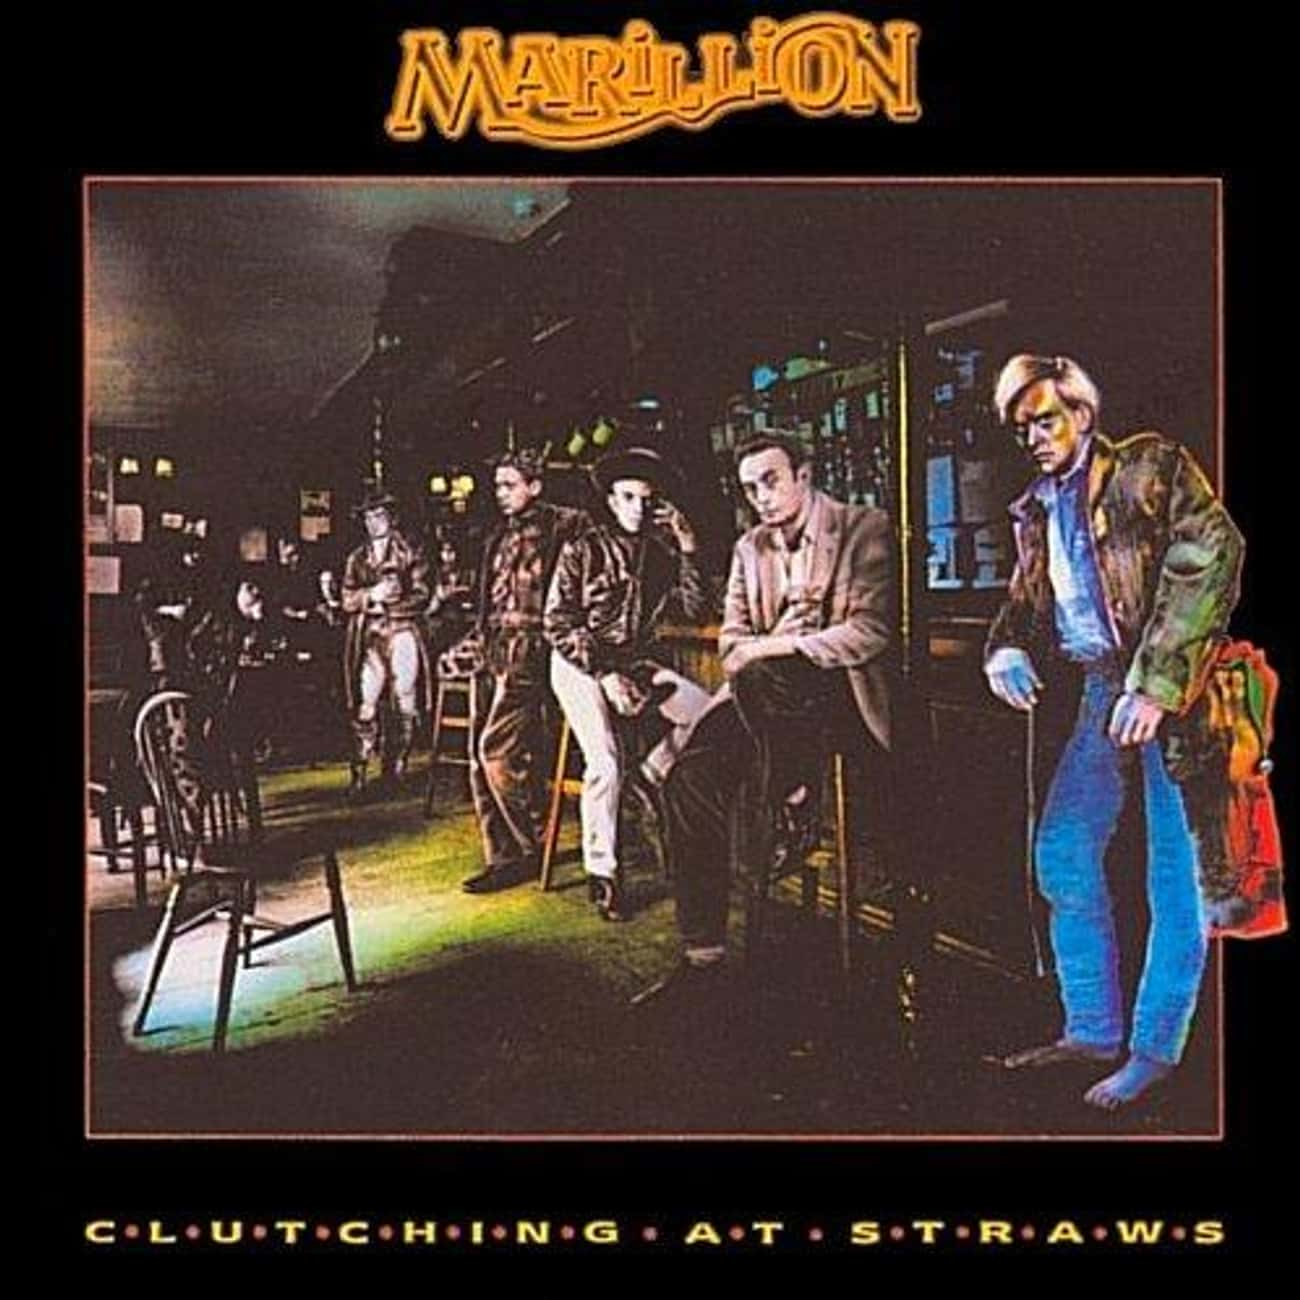 Clutching at Straws is listed (or ranked) 2 on the list The Best Marillion Albums of All Time